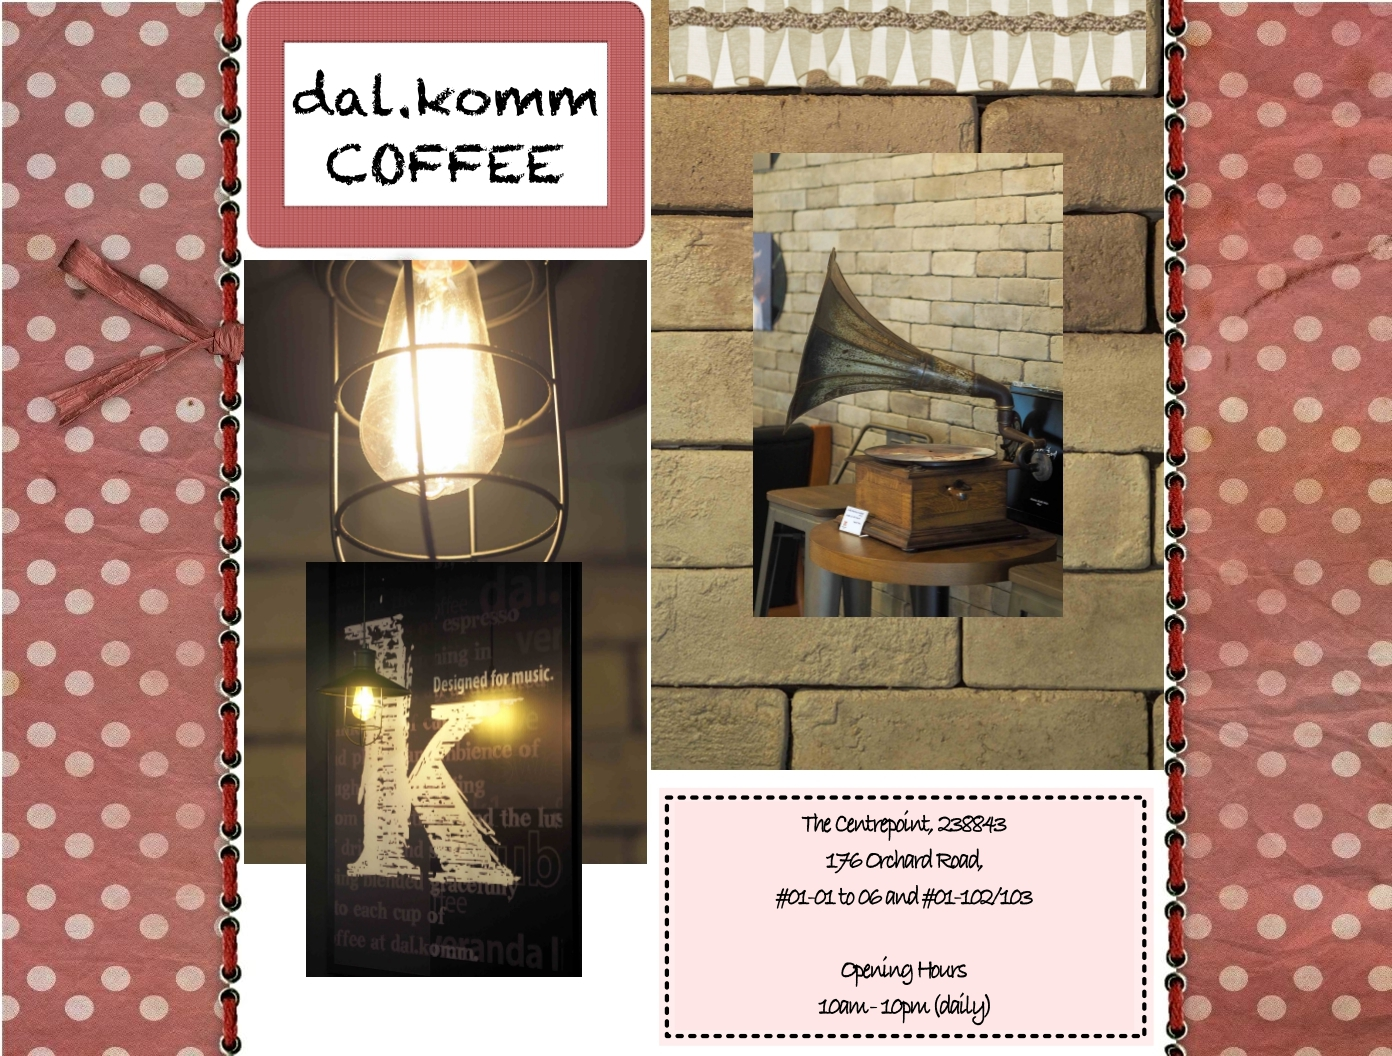 A dalkomm coffee 3